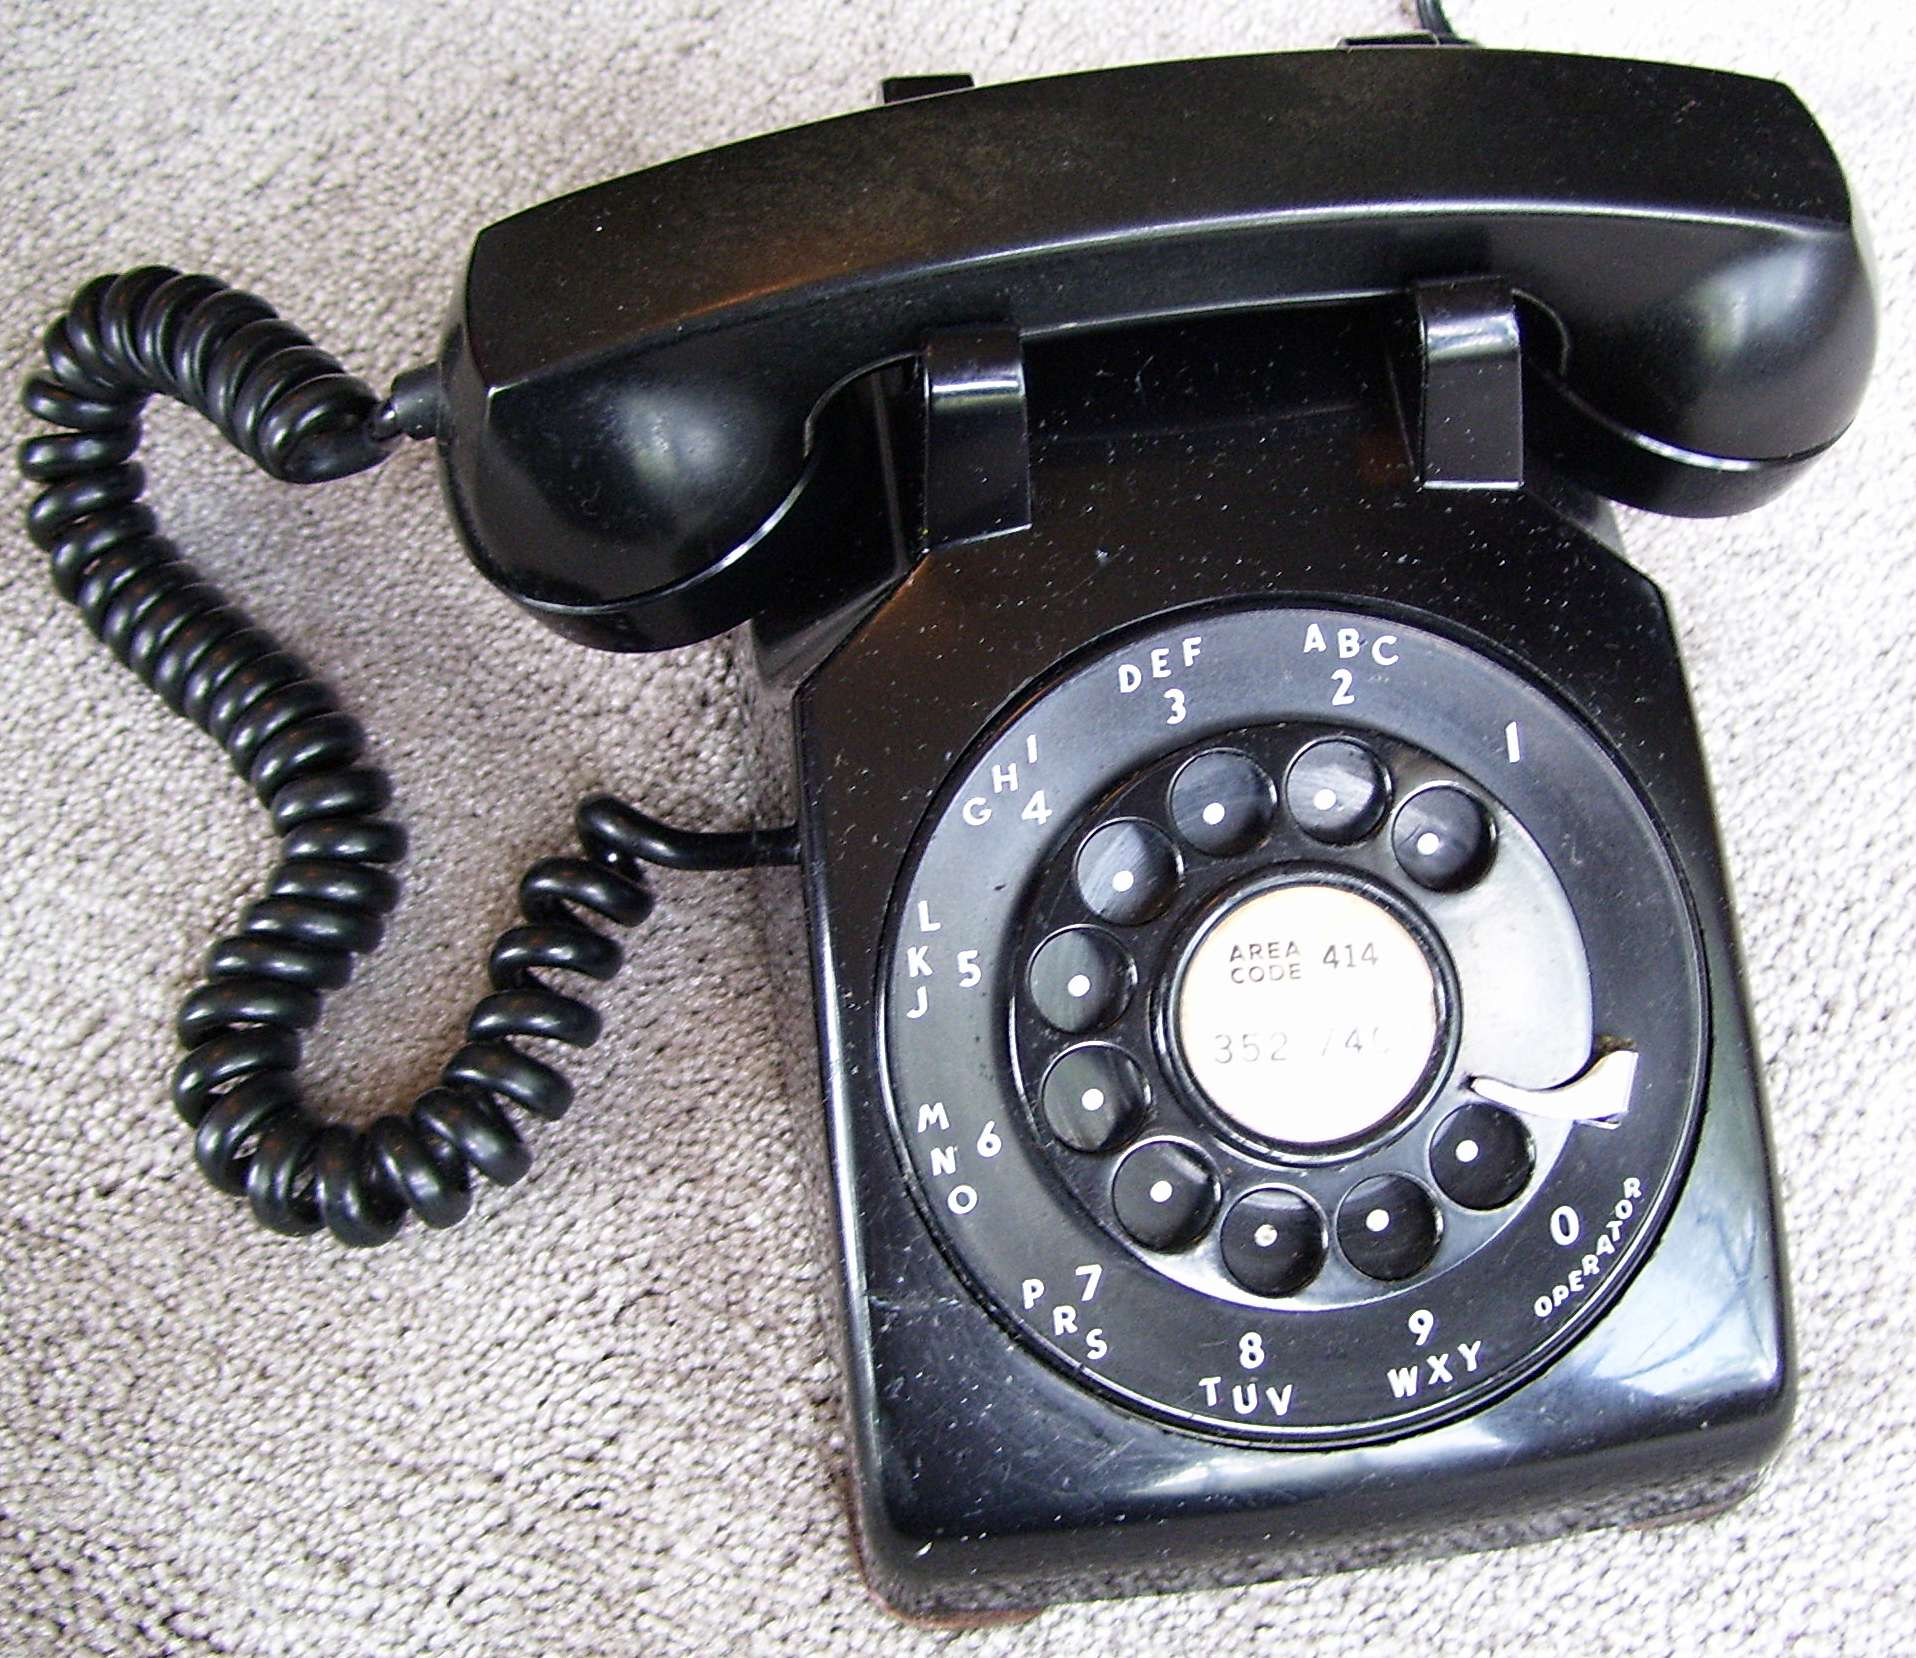 A Western Electric 500, courtesy of Wikipedia